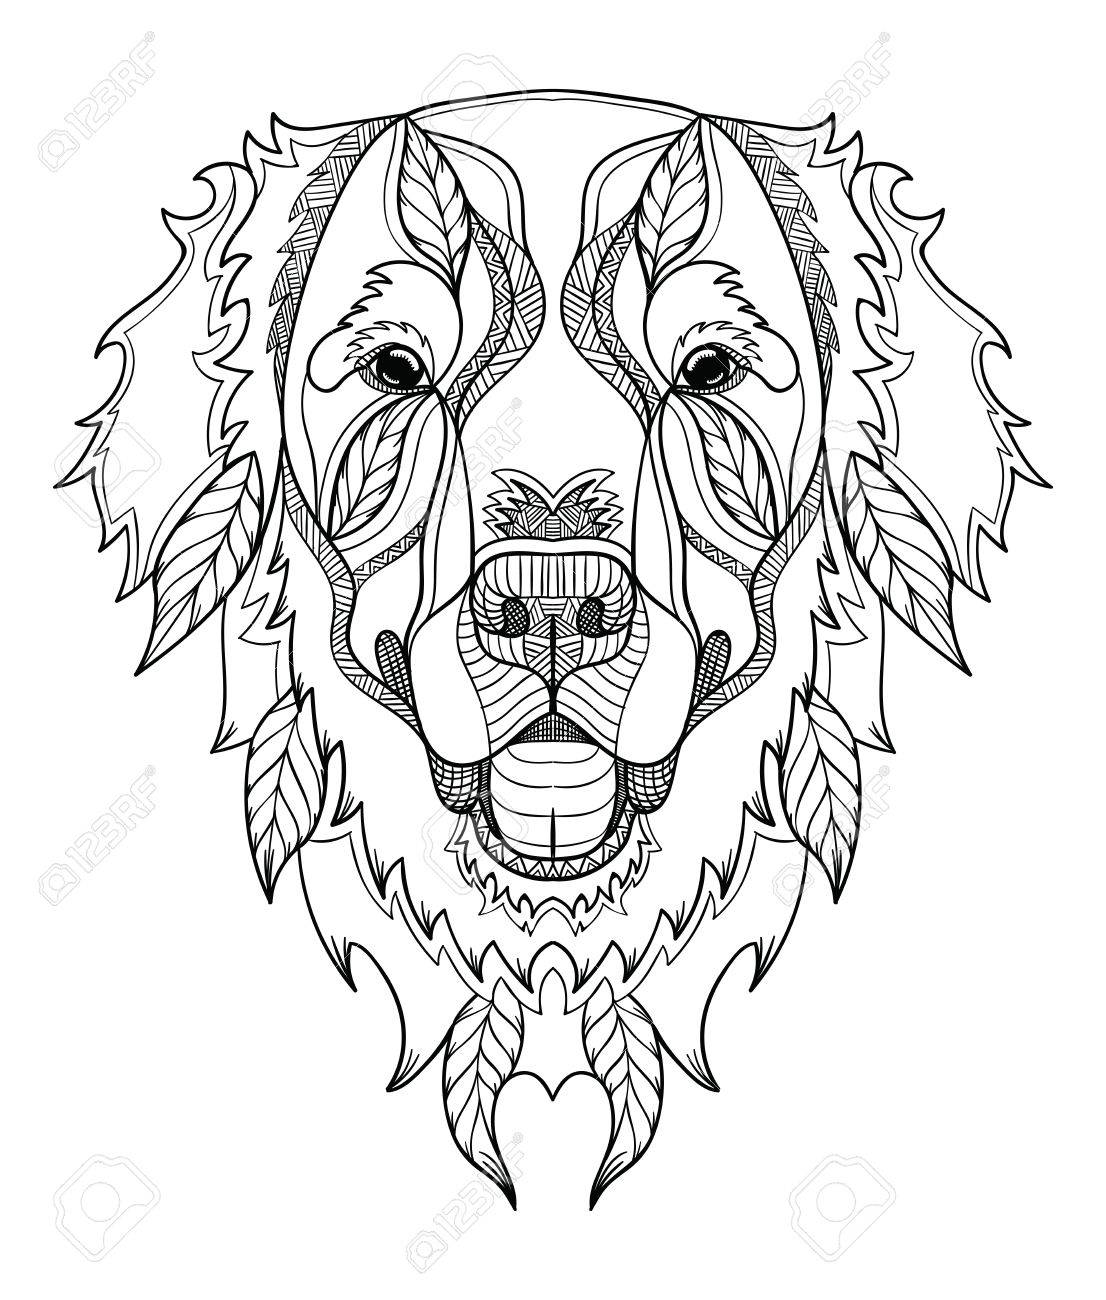 Golden Retriever Dog Zentangle Doodle Stylized Head Hand Drawn